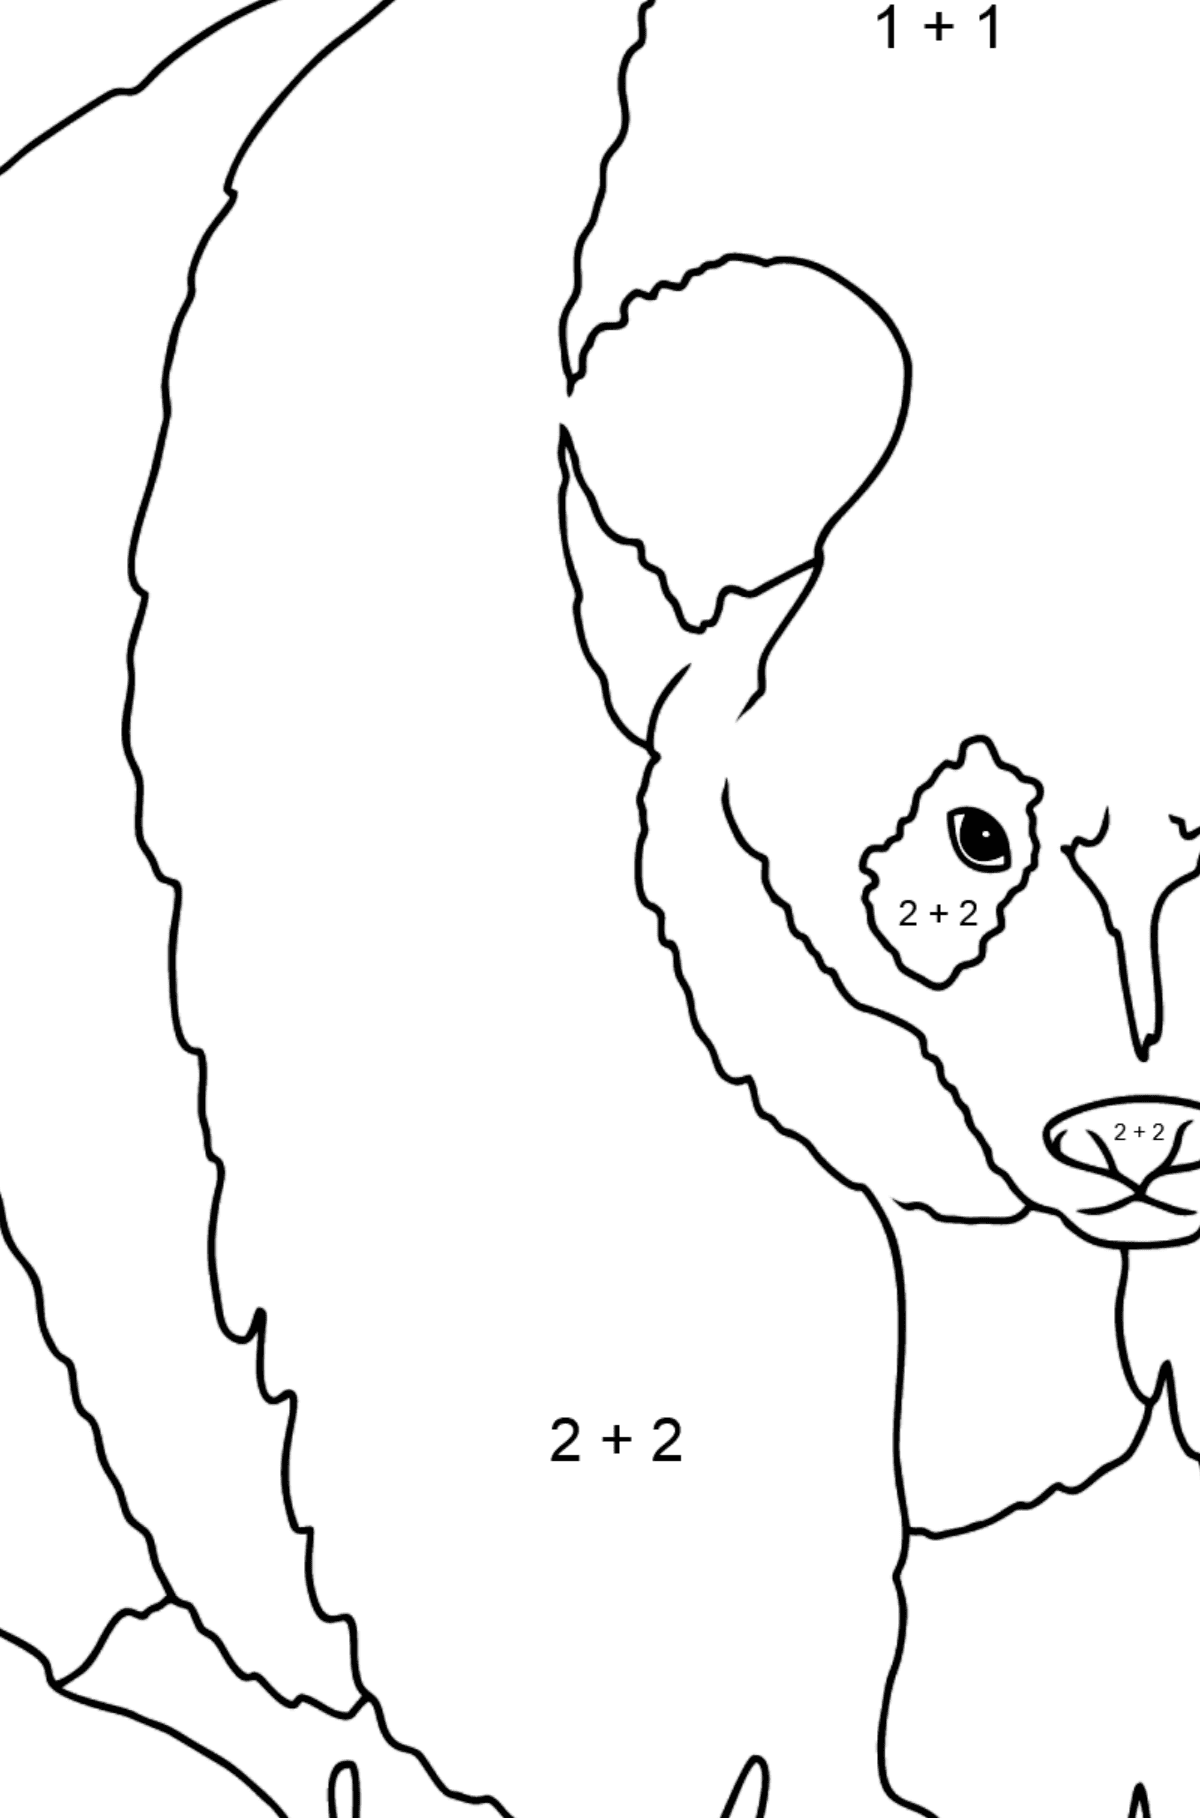 Coloring Page - A Panda is Standing - Math Coloring - Addition for Kids